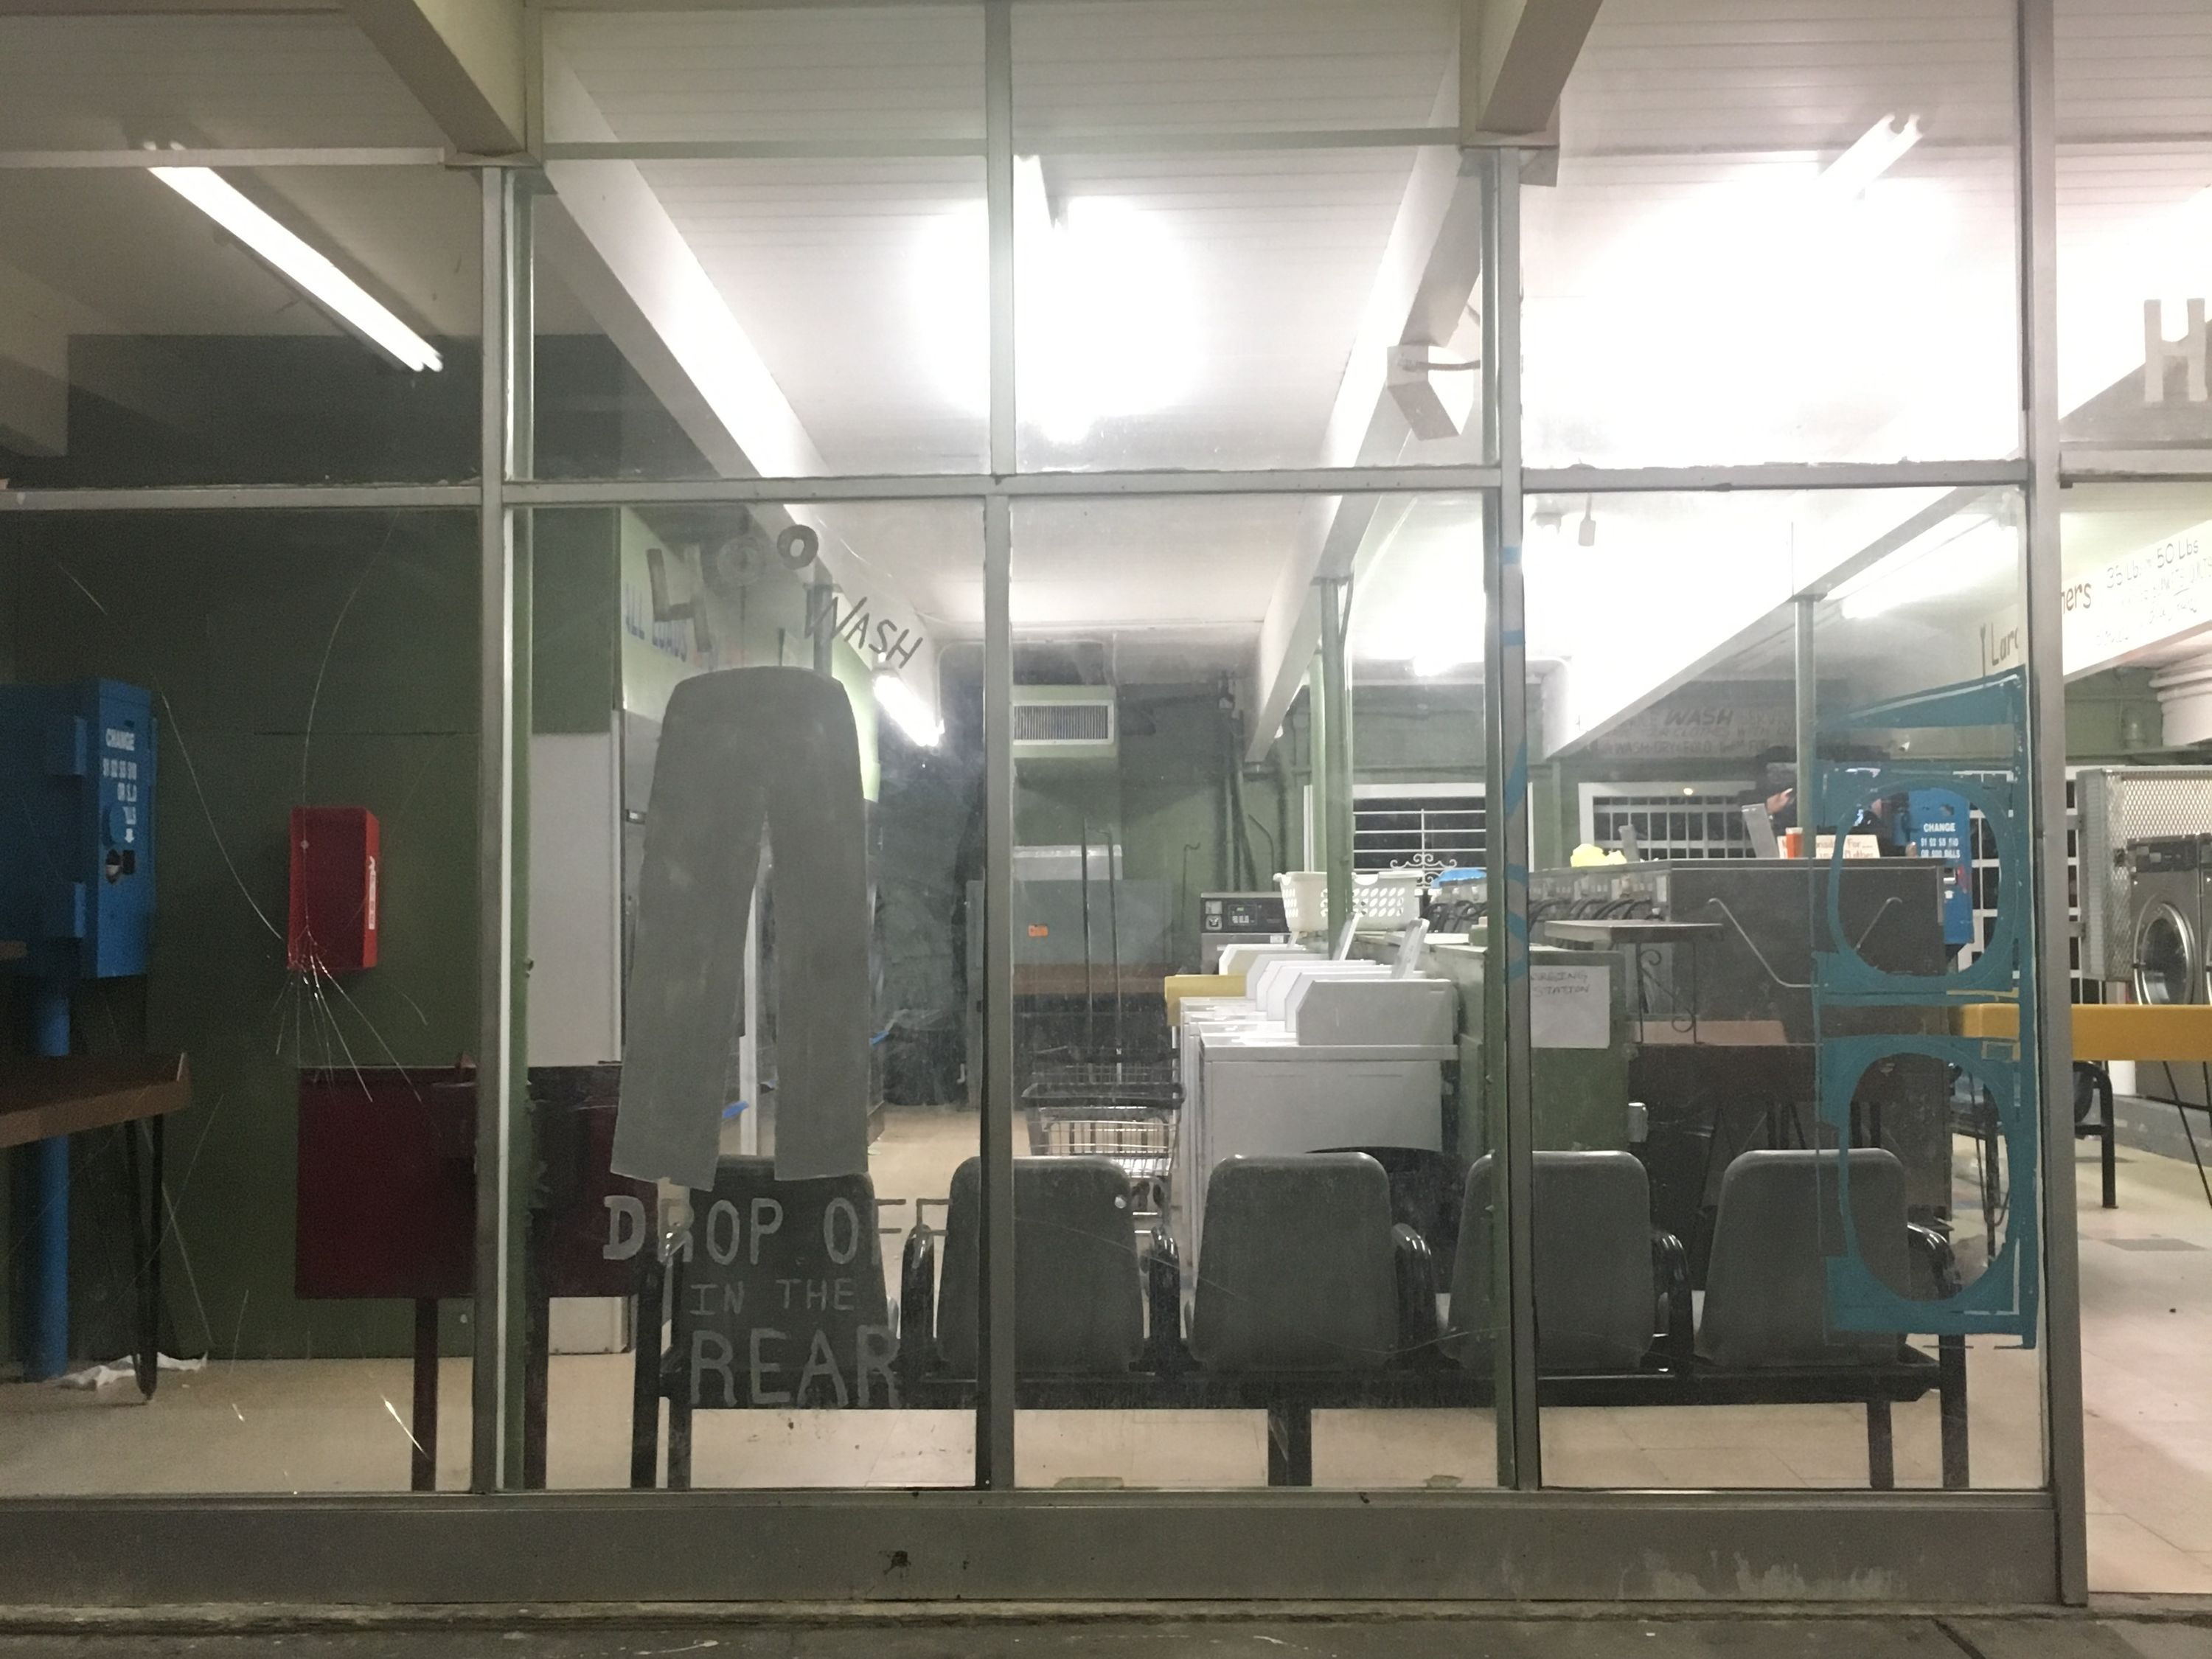 Photo of a laundromat taken from the street.